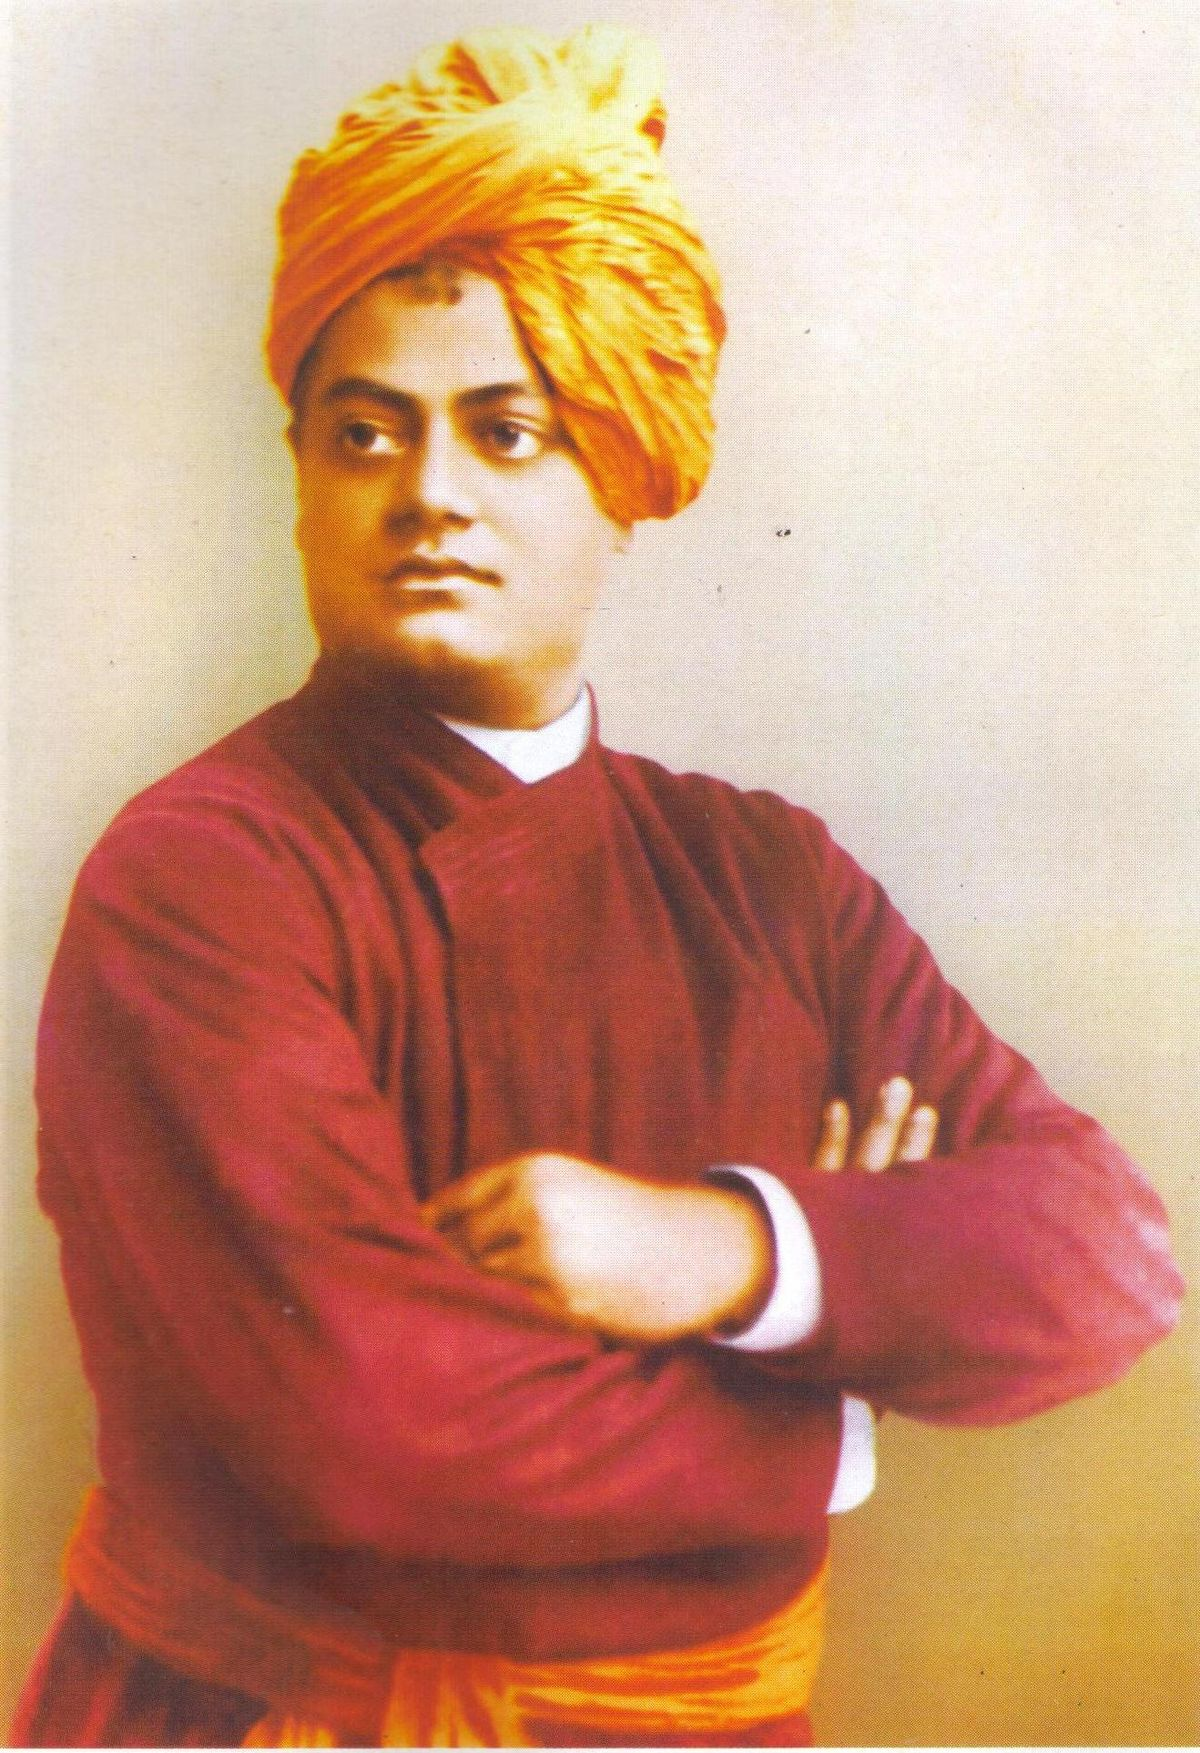 influence and legacy of swami vivekananda Swami vivekananda celebrations -please join us to celebrate the legacy, life & influence of swami vivekananda – saturday may 7th, 3:00 pm – saraswati hall  skit describing the life of swami, music that moved swami and music that swamiji liked.